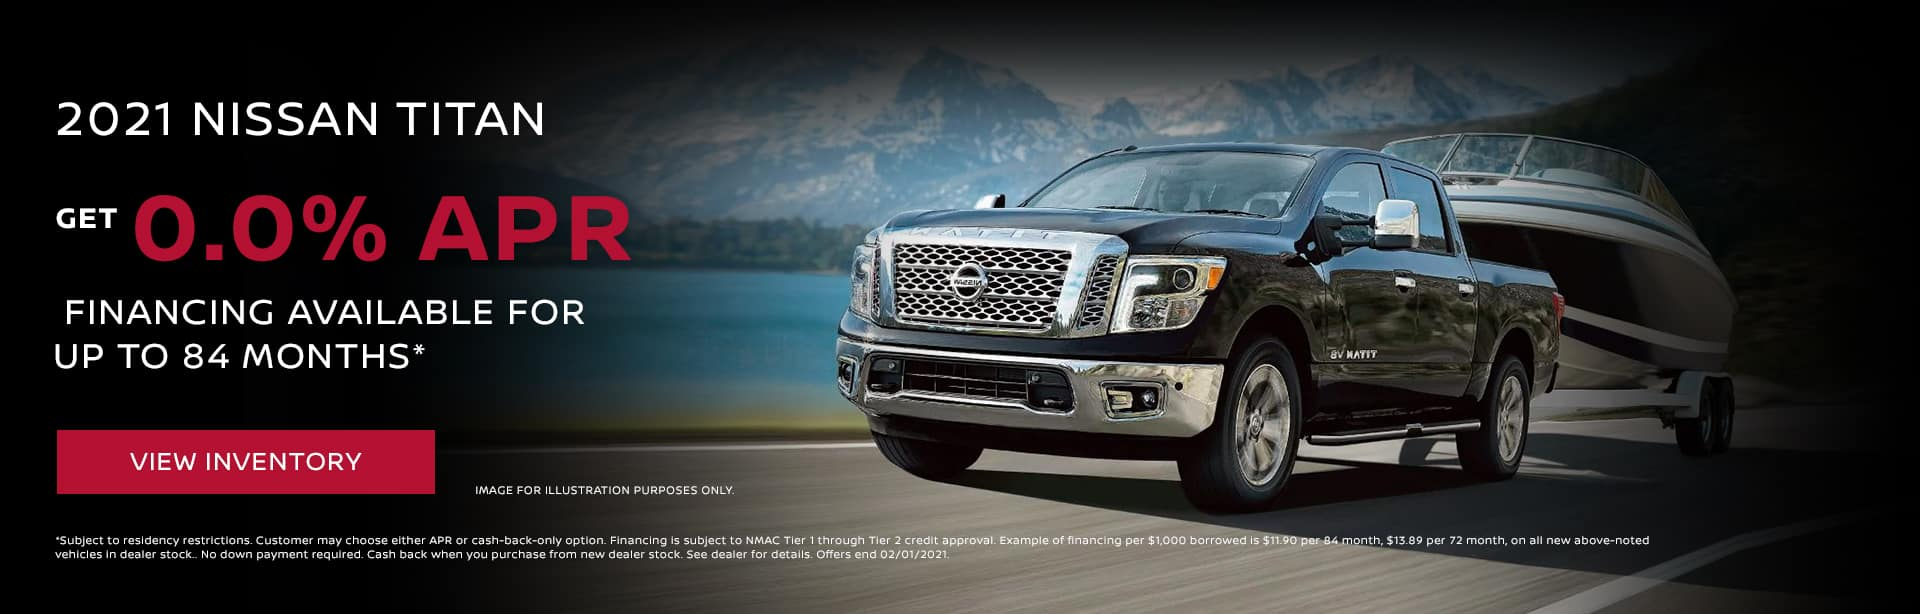 2021 Nissan Titan 0.0% APR financing available for up to 84 months*